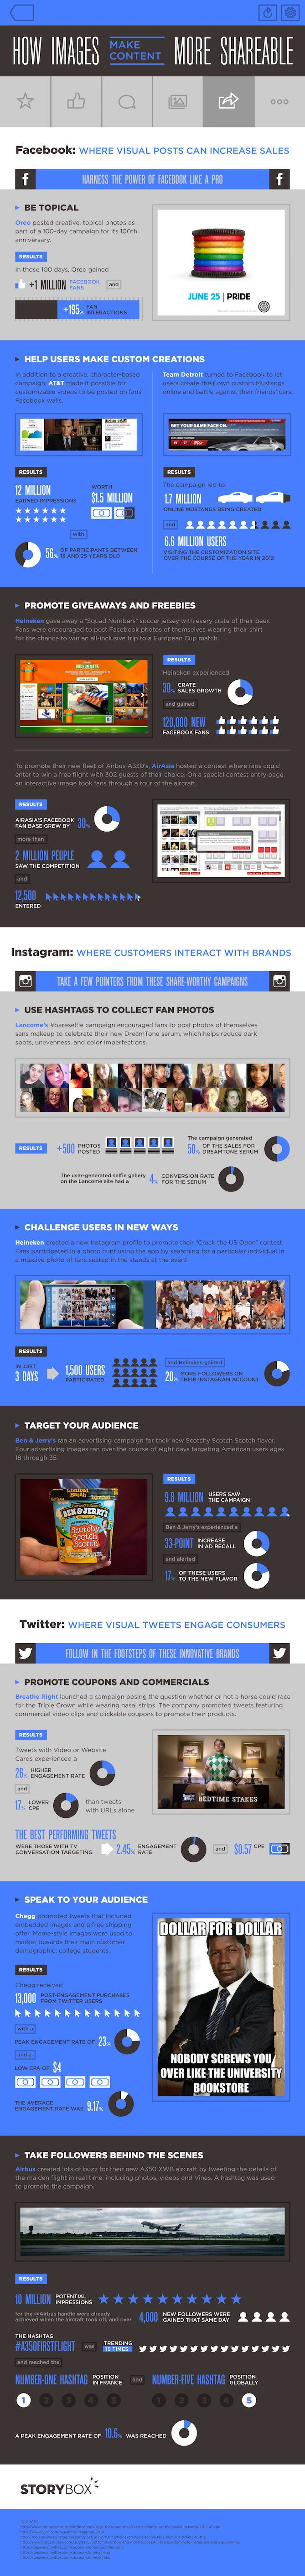 How Images Make Content More Shareable On Facebook Instagram Twitter Infographic Social Media Infographic Infographic Marketing Digital Marketing Infographics